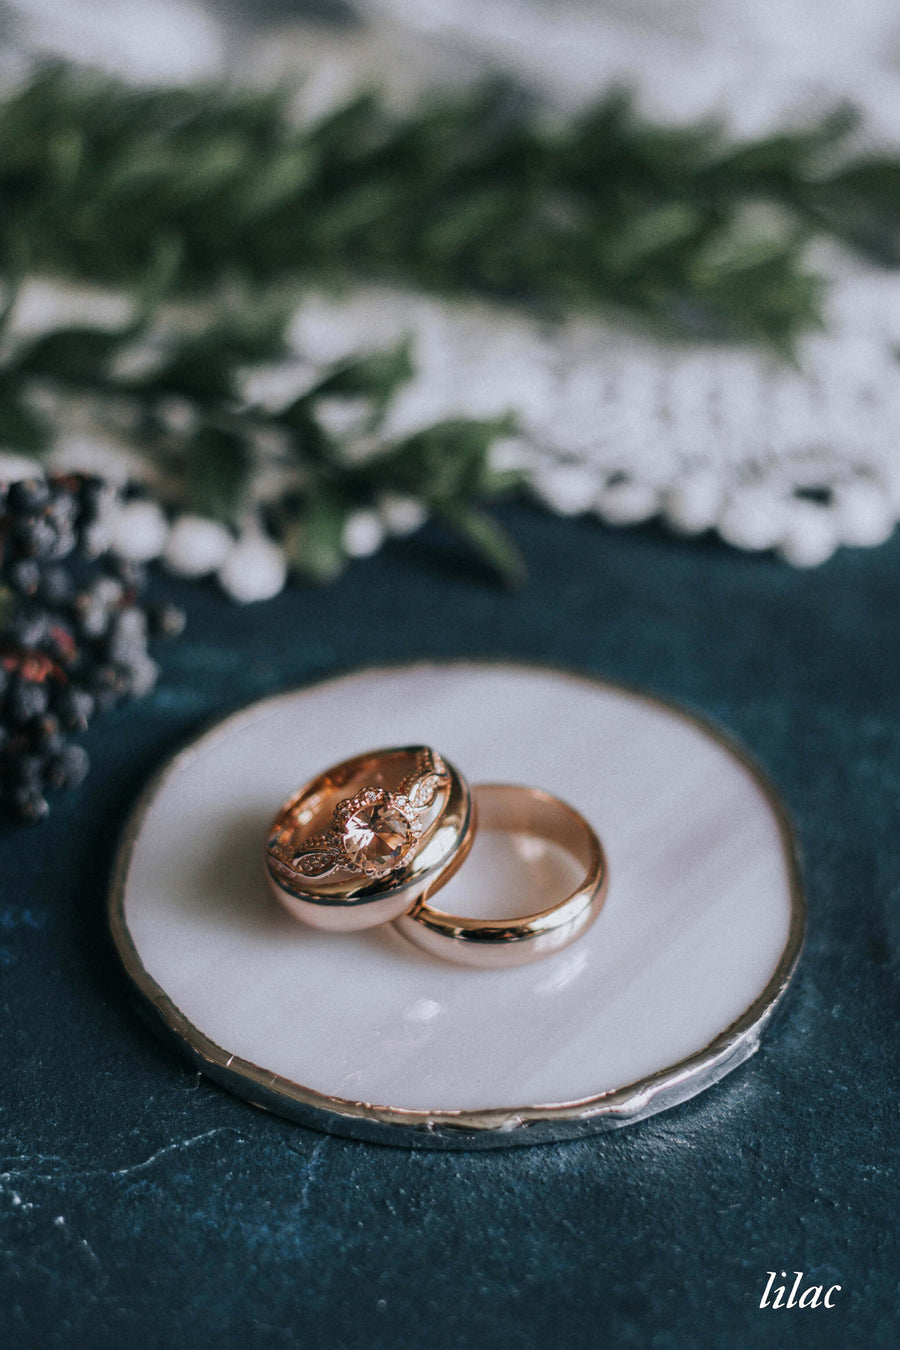 lilac wedding ring dish